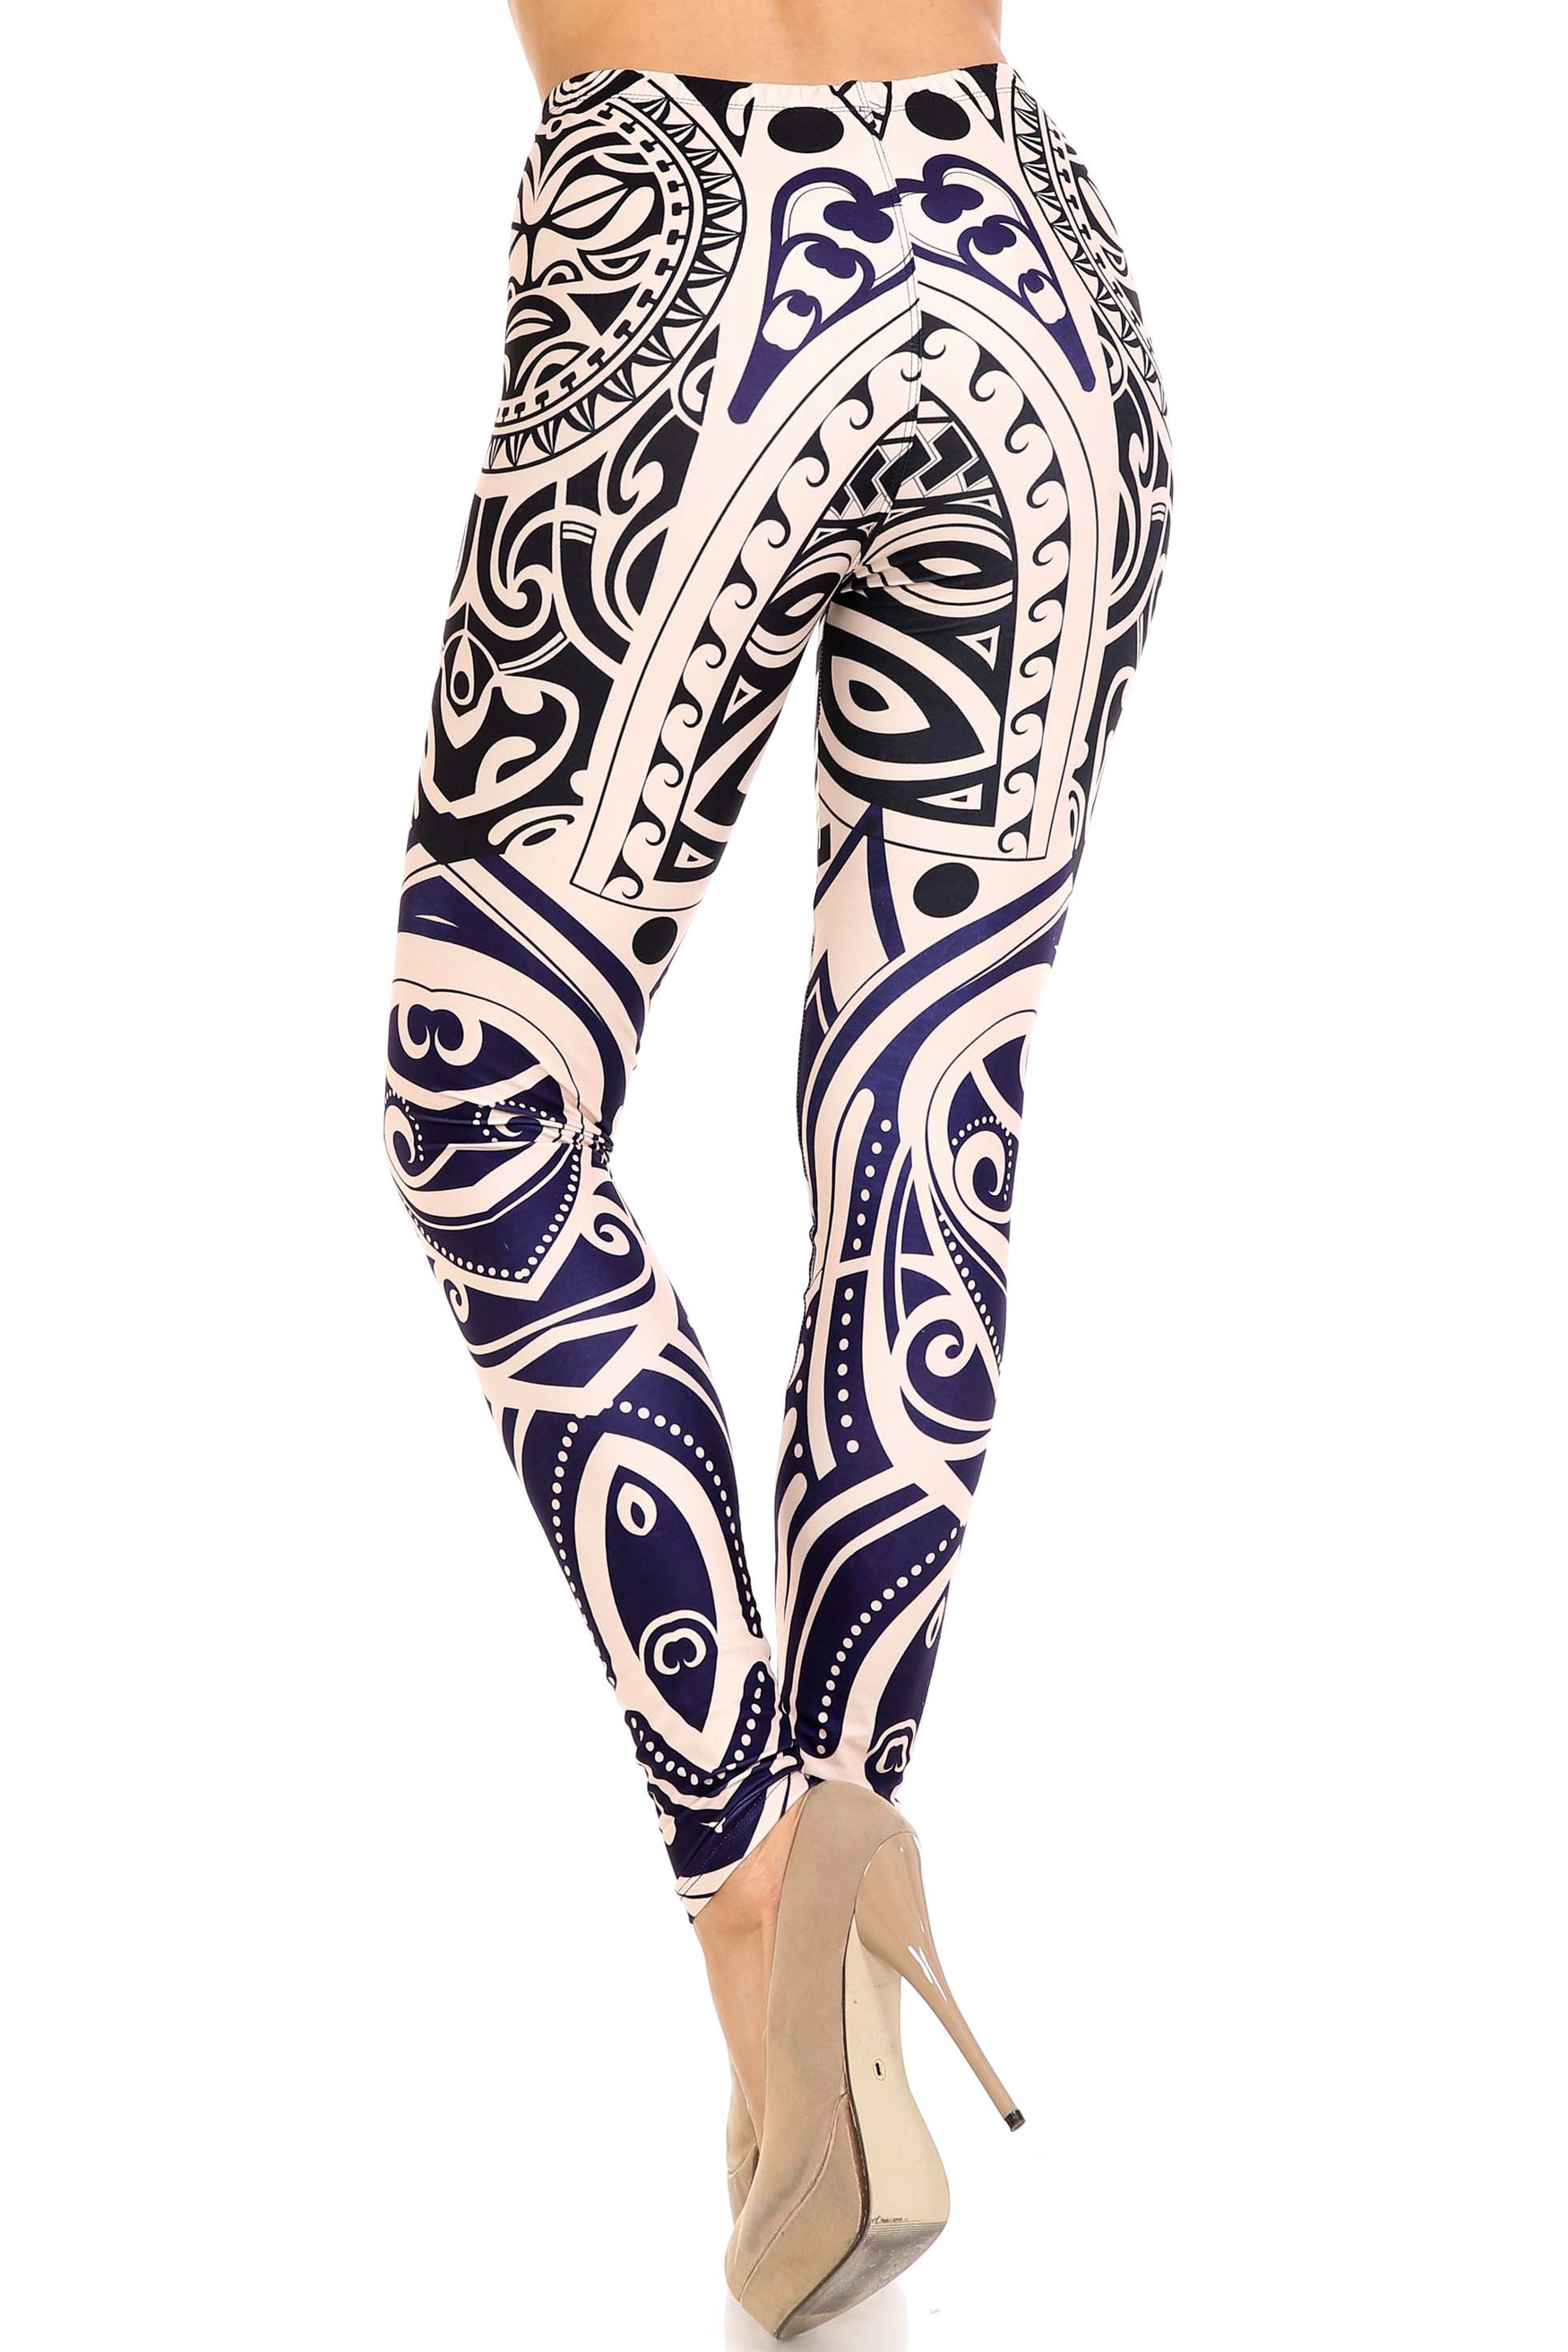 45 degree back view of Creamy Soft Valhalla Plus Size Leggings - USA Fashion™ with a body-fitted flattering look.